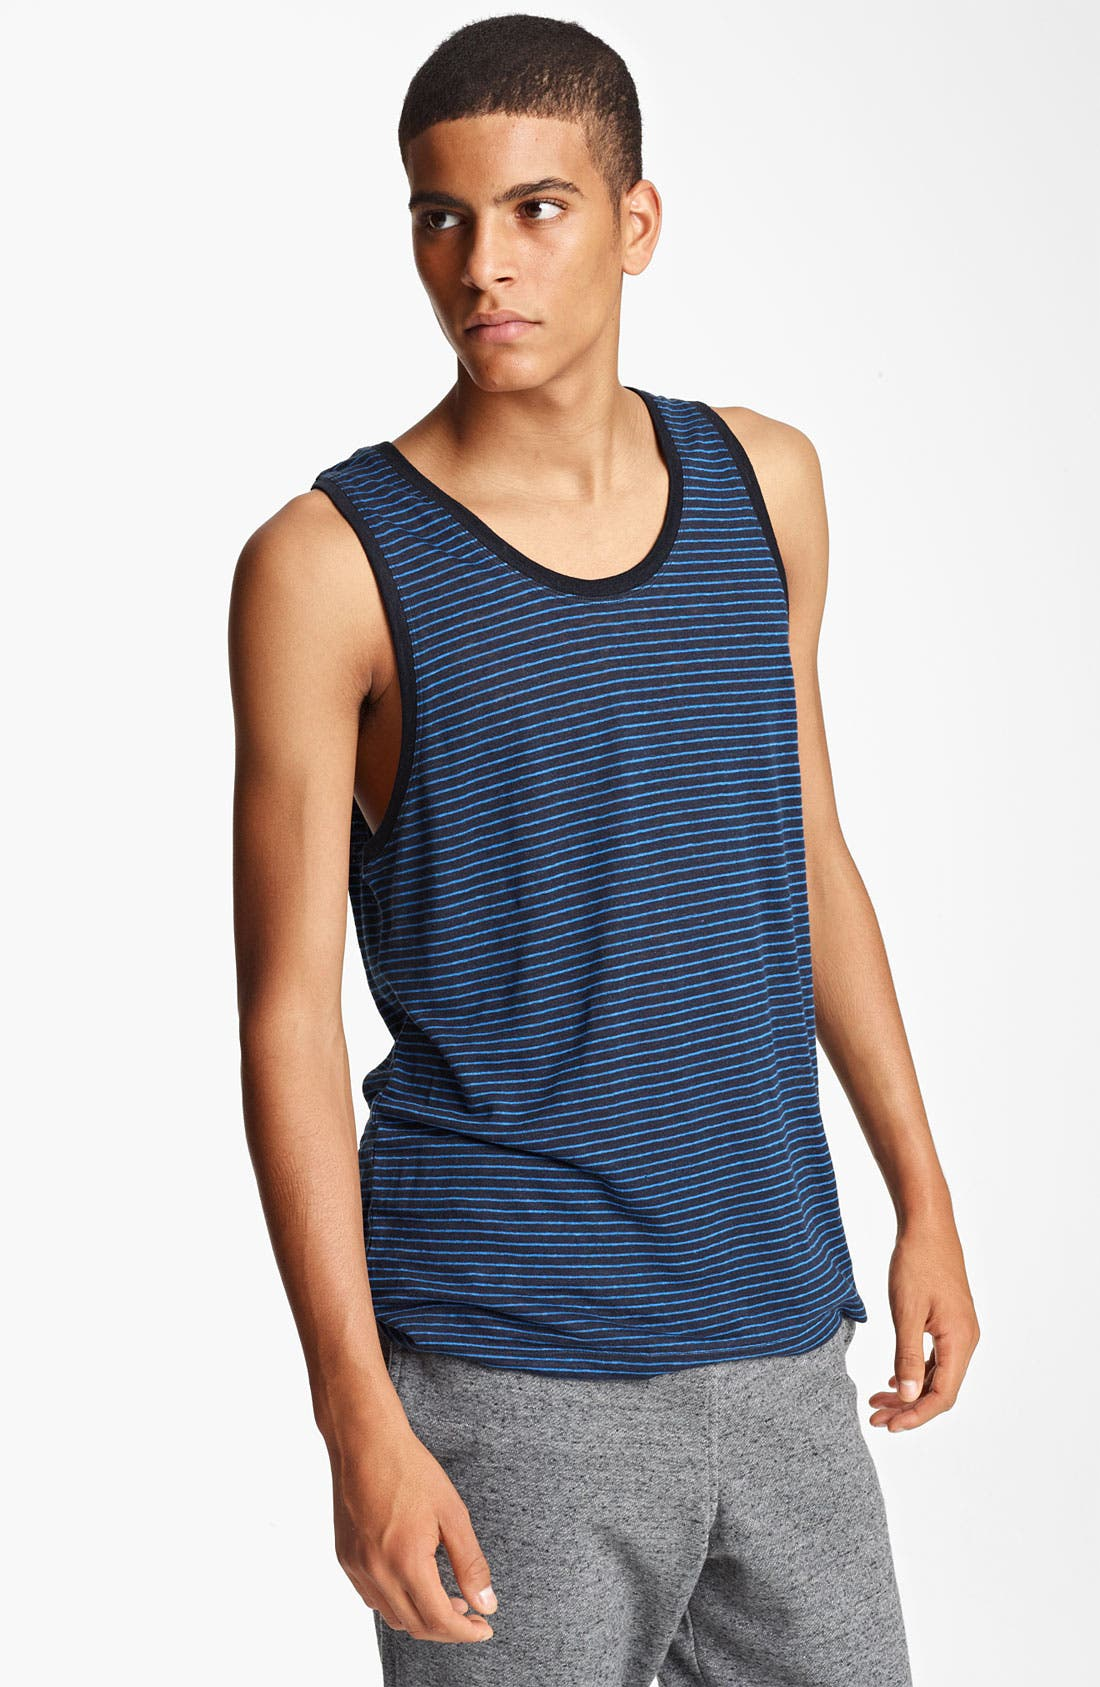 Alternate Image 1 Selected - T by Alexander Wang Stripe Jersey Tank Top